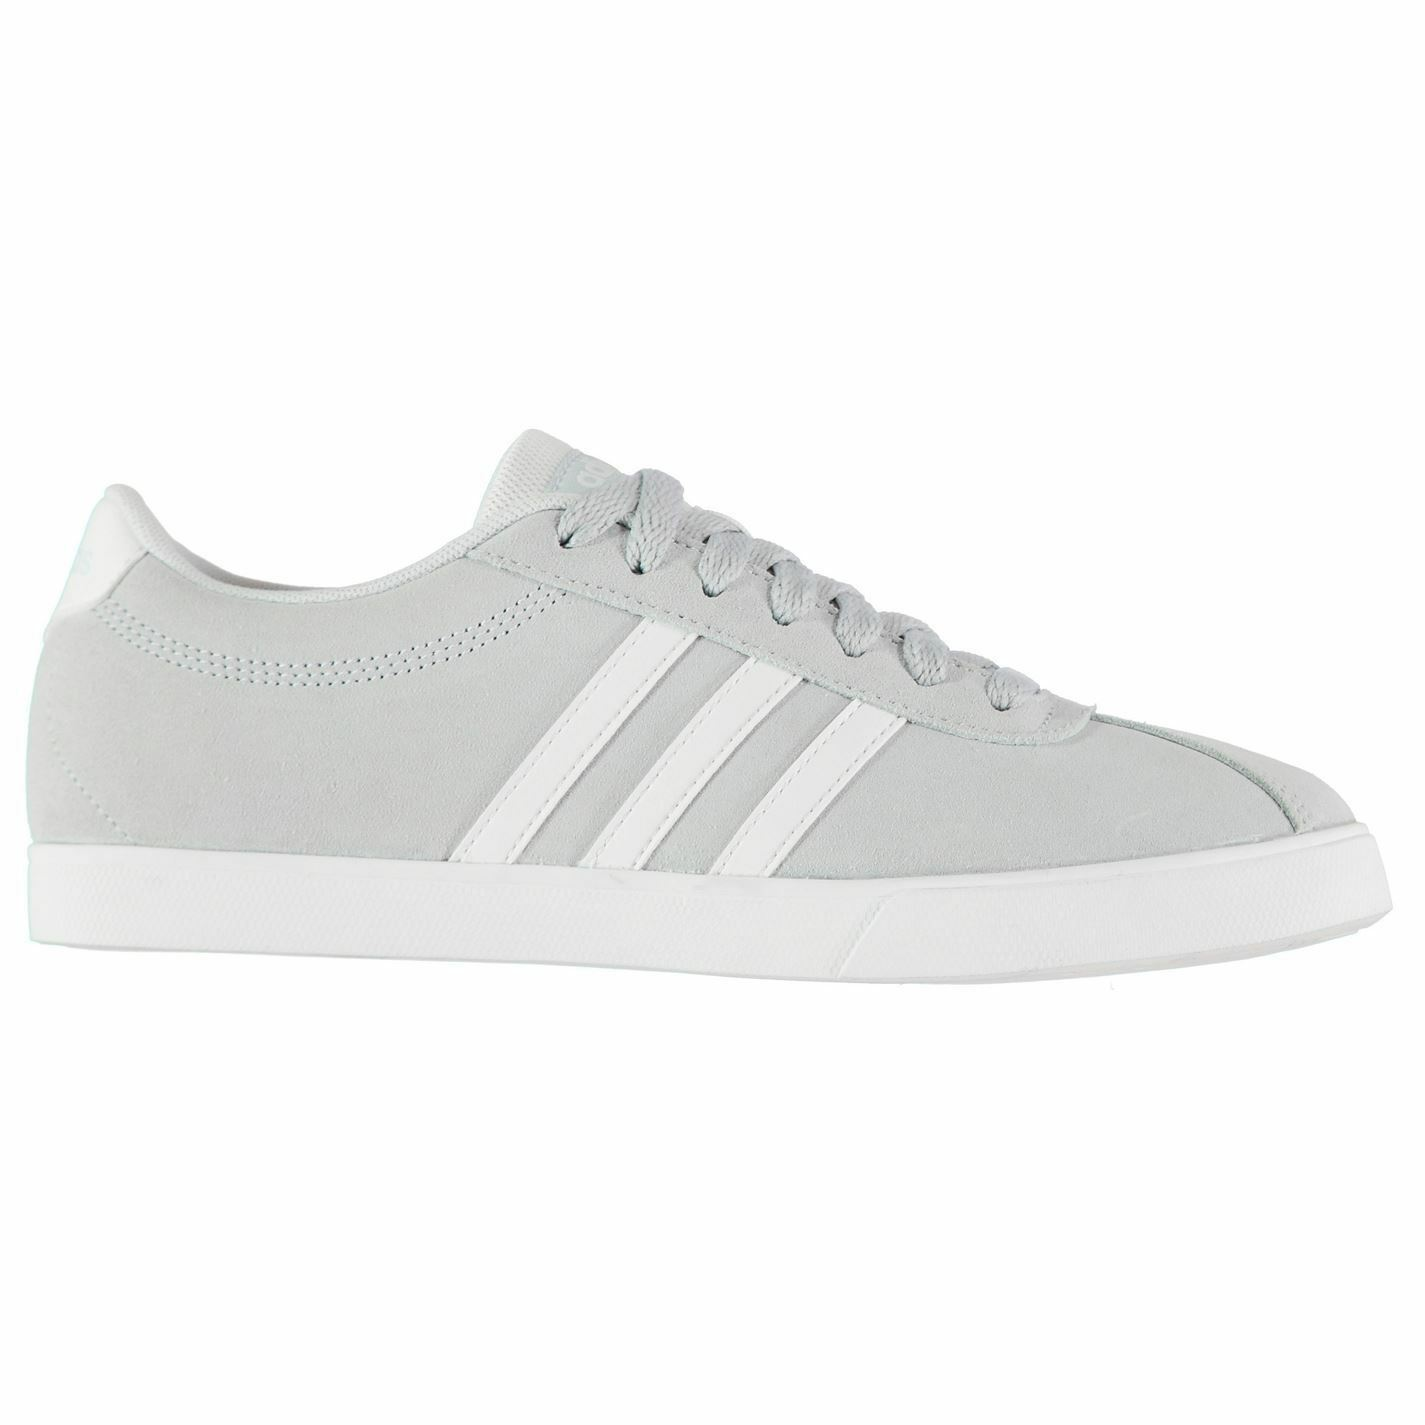 Adidas Court Set Suede Trainers damen Blau Weiß Sports Trainers Turnschuhe